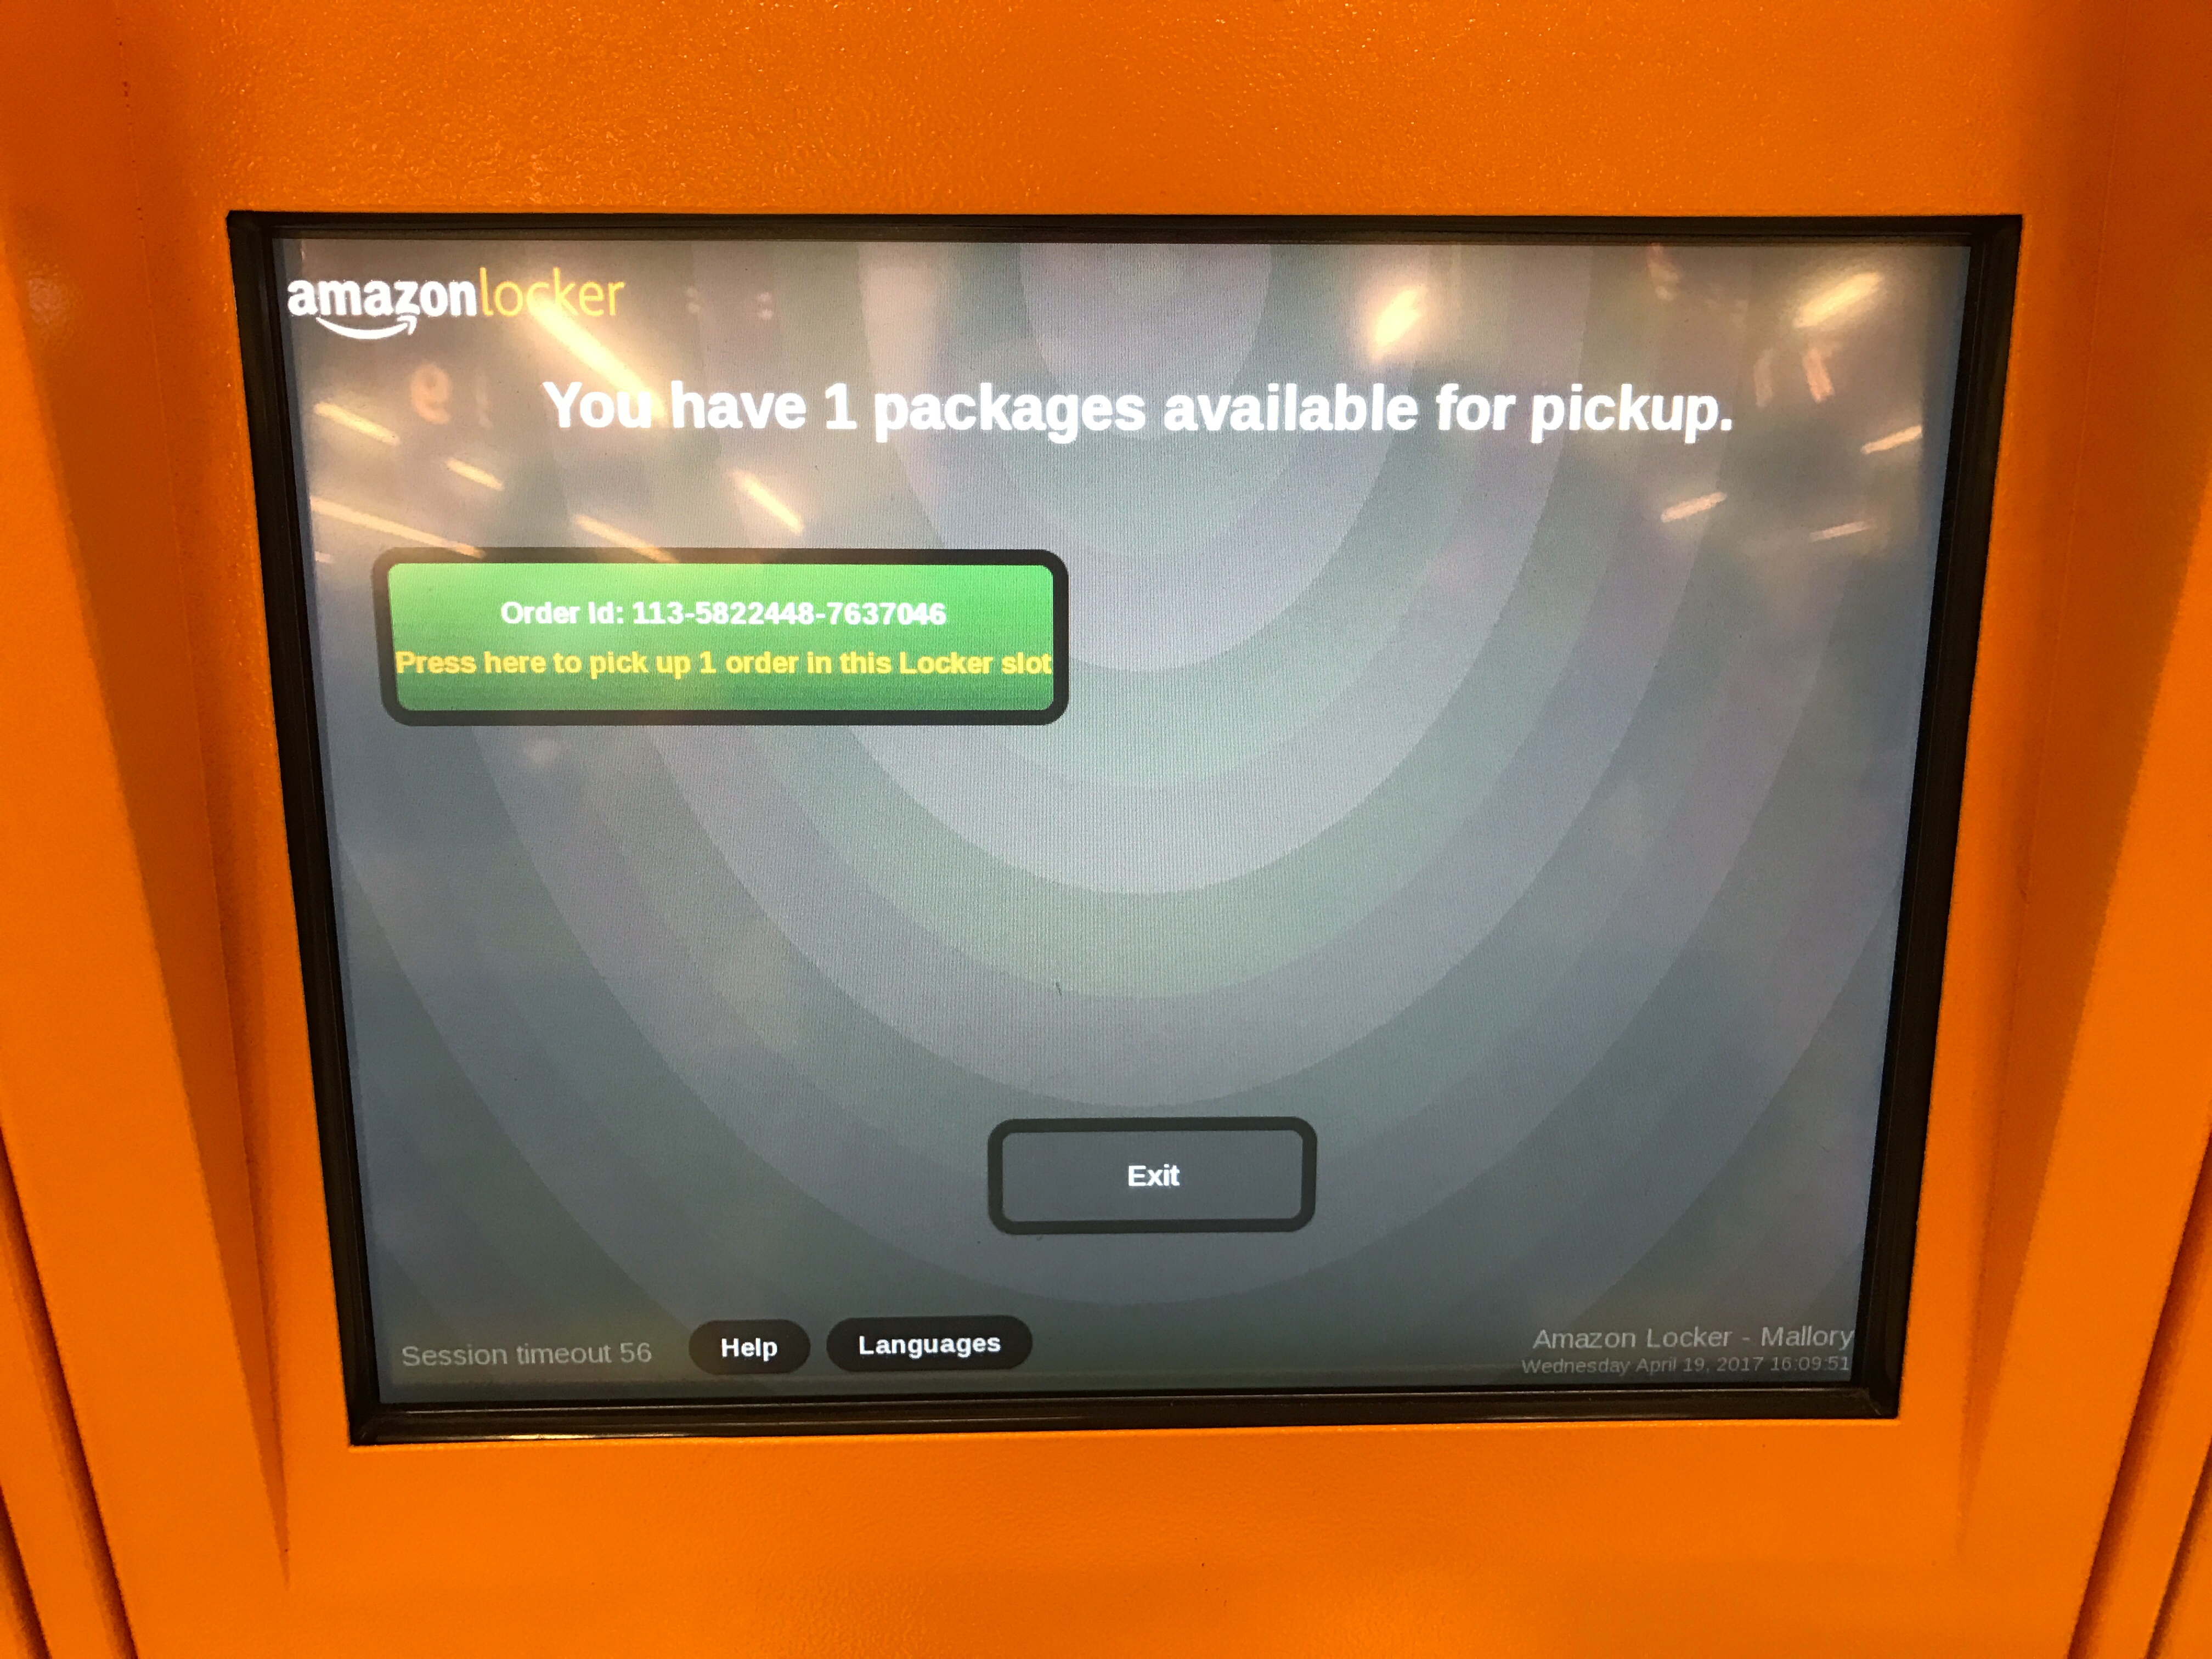 Detail view of Amazon locker kiosk to confirm and pick-up Amazon orders